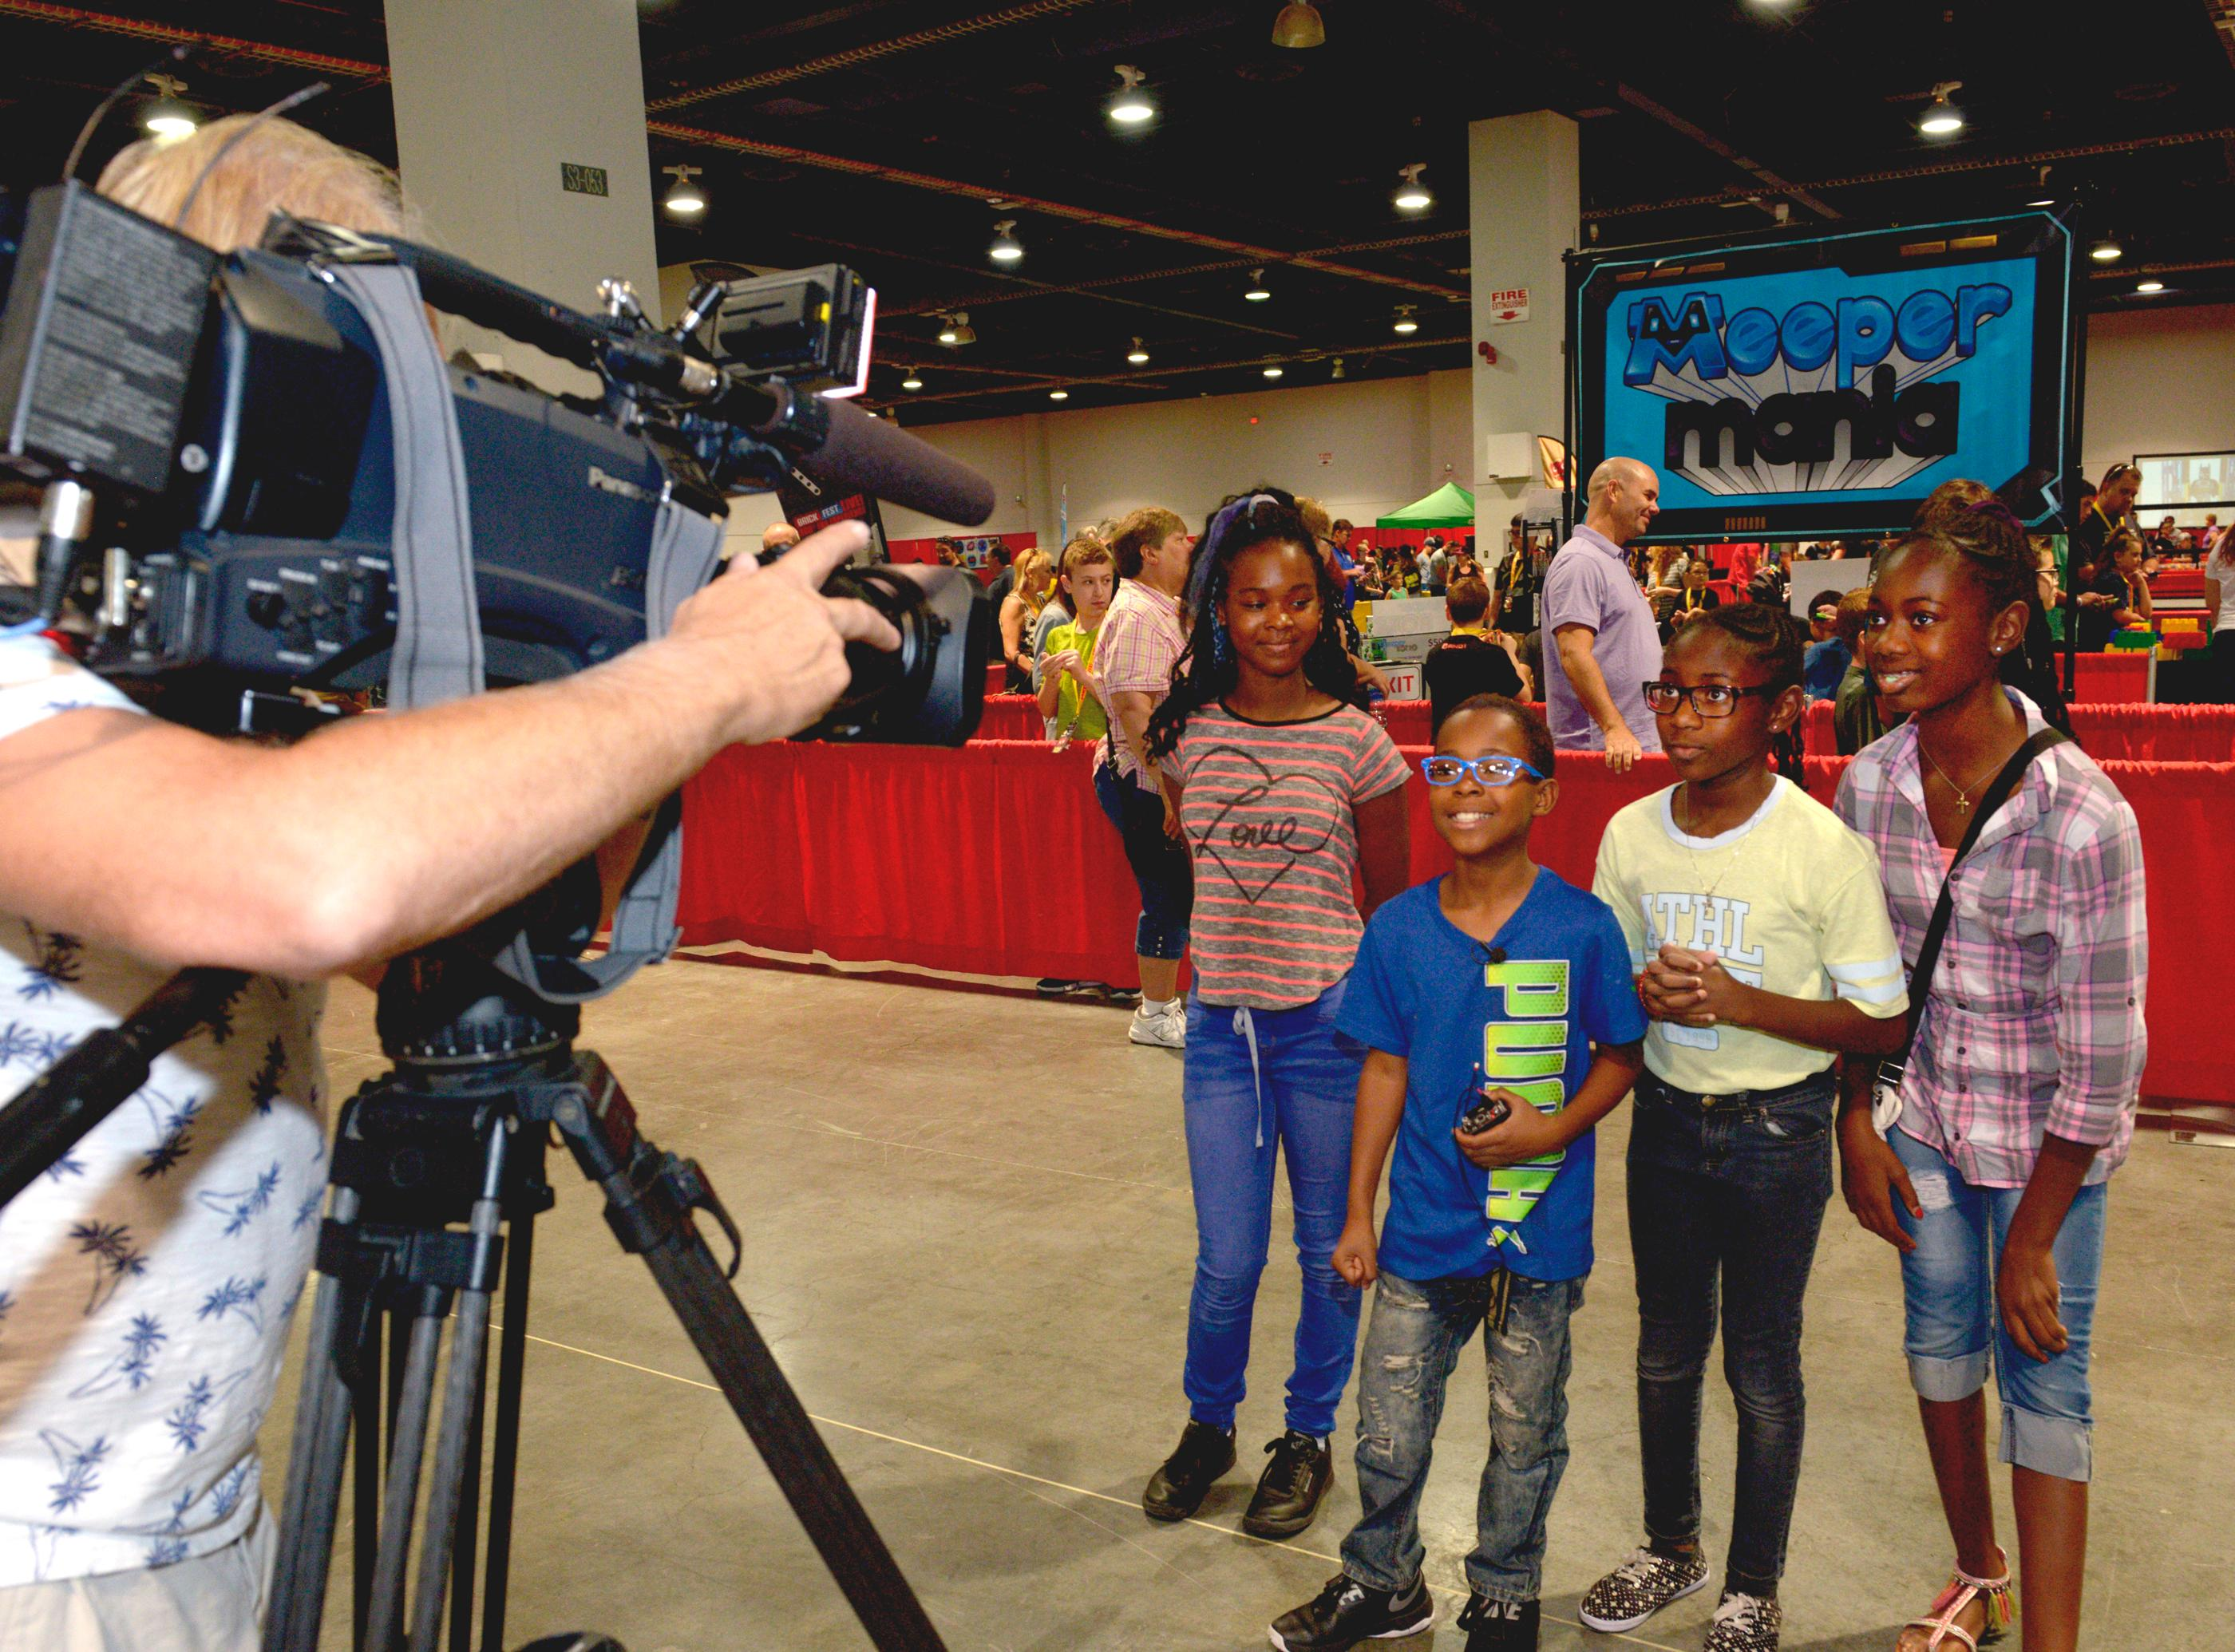 Fans (l-r) Jayla Williams, Jaron Williams, Ogechi Godspower and Nneoma Godspower are interviewed during the Brick Fest Live Lego Fan Experience at the Las Vegas Convention Center, September 9, 2017. [Glenn Pinkerton/Las Vegas News Bureau]